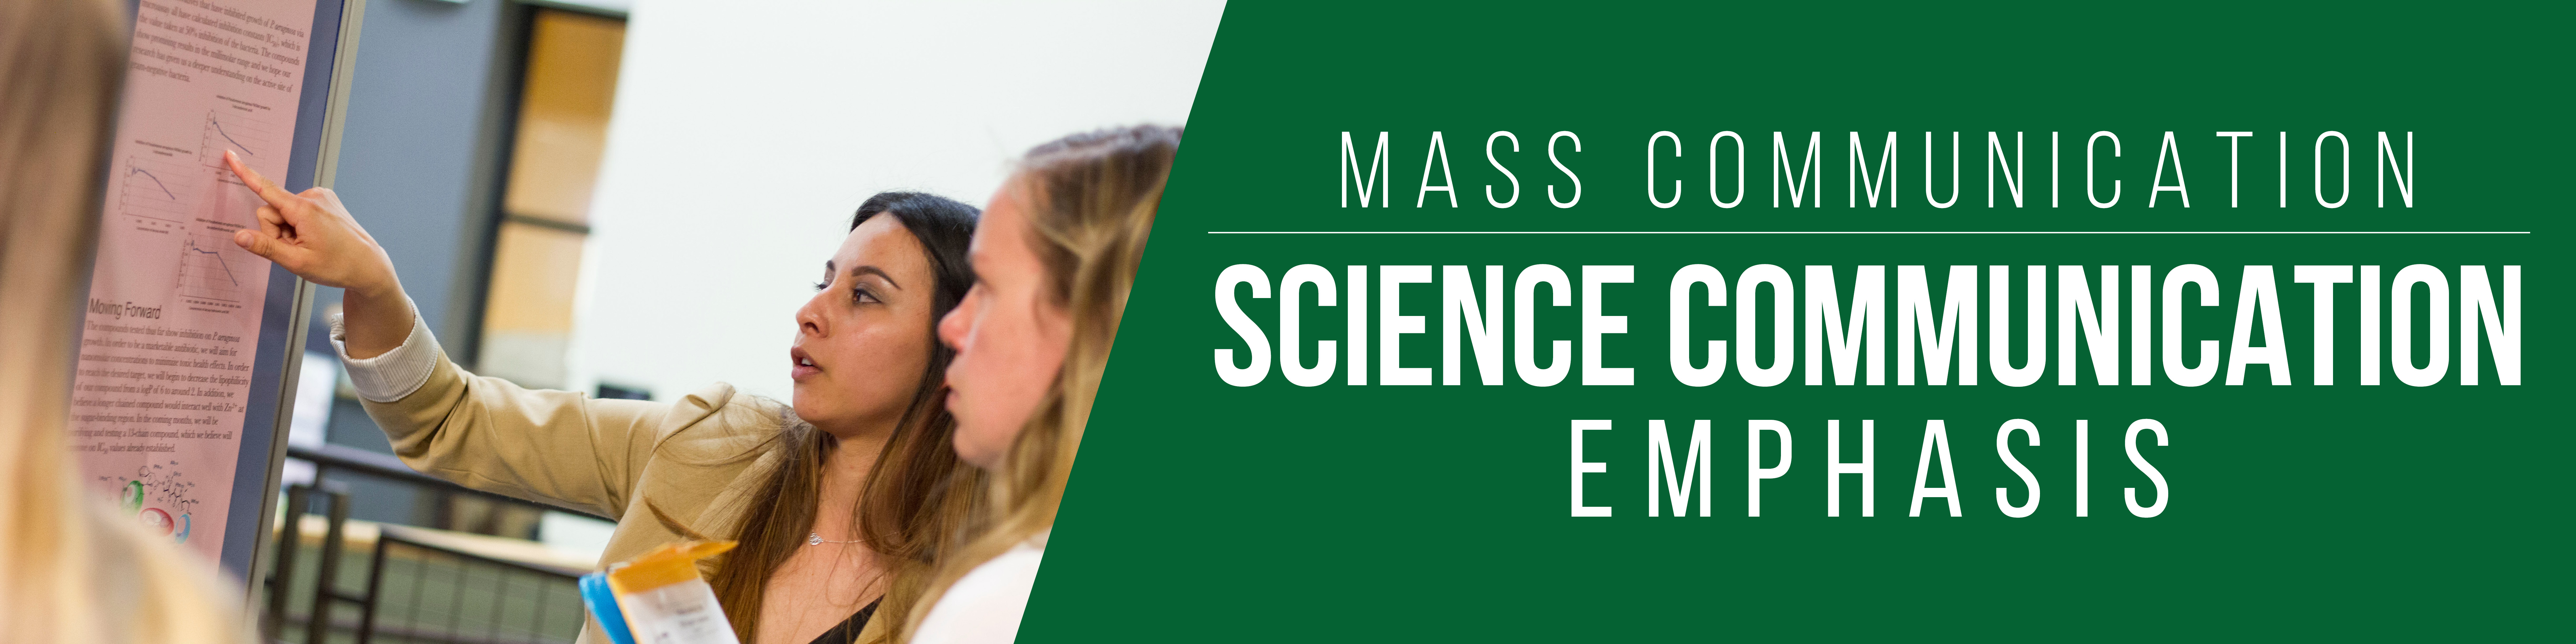 MassCommScience2018